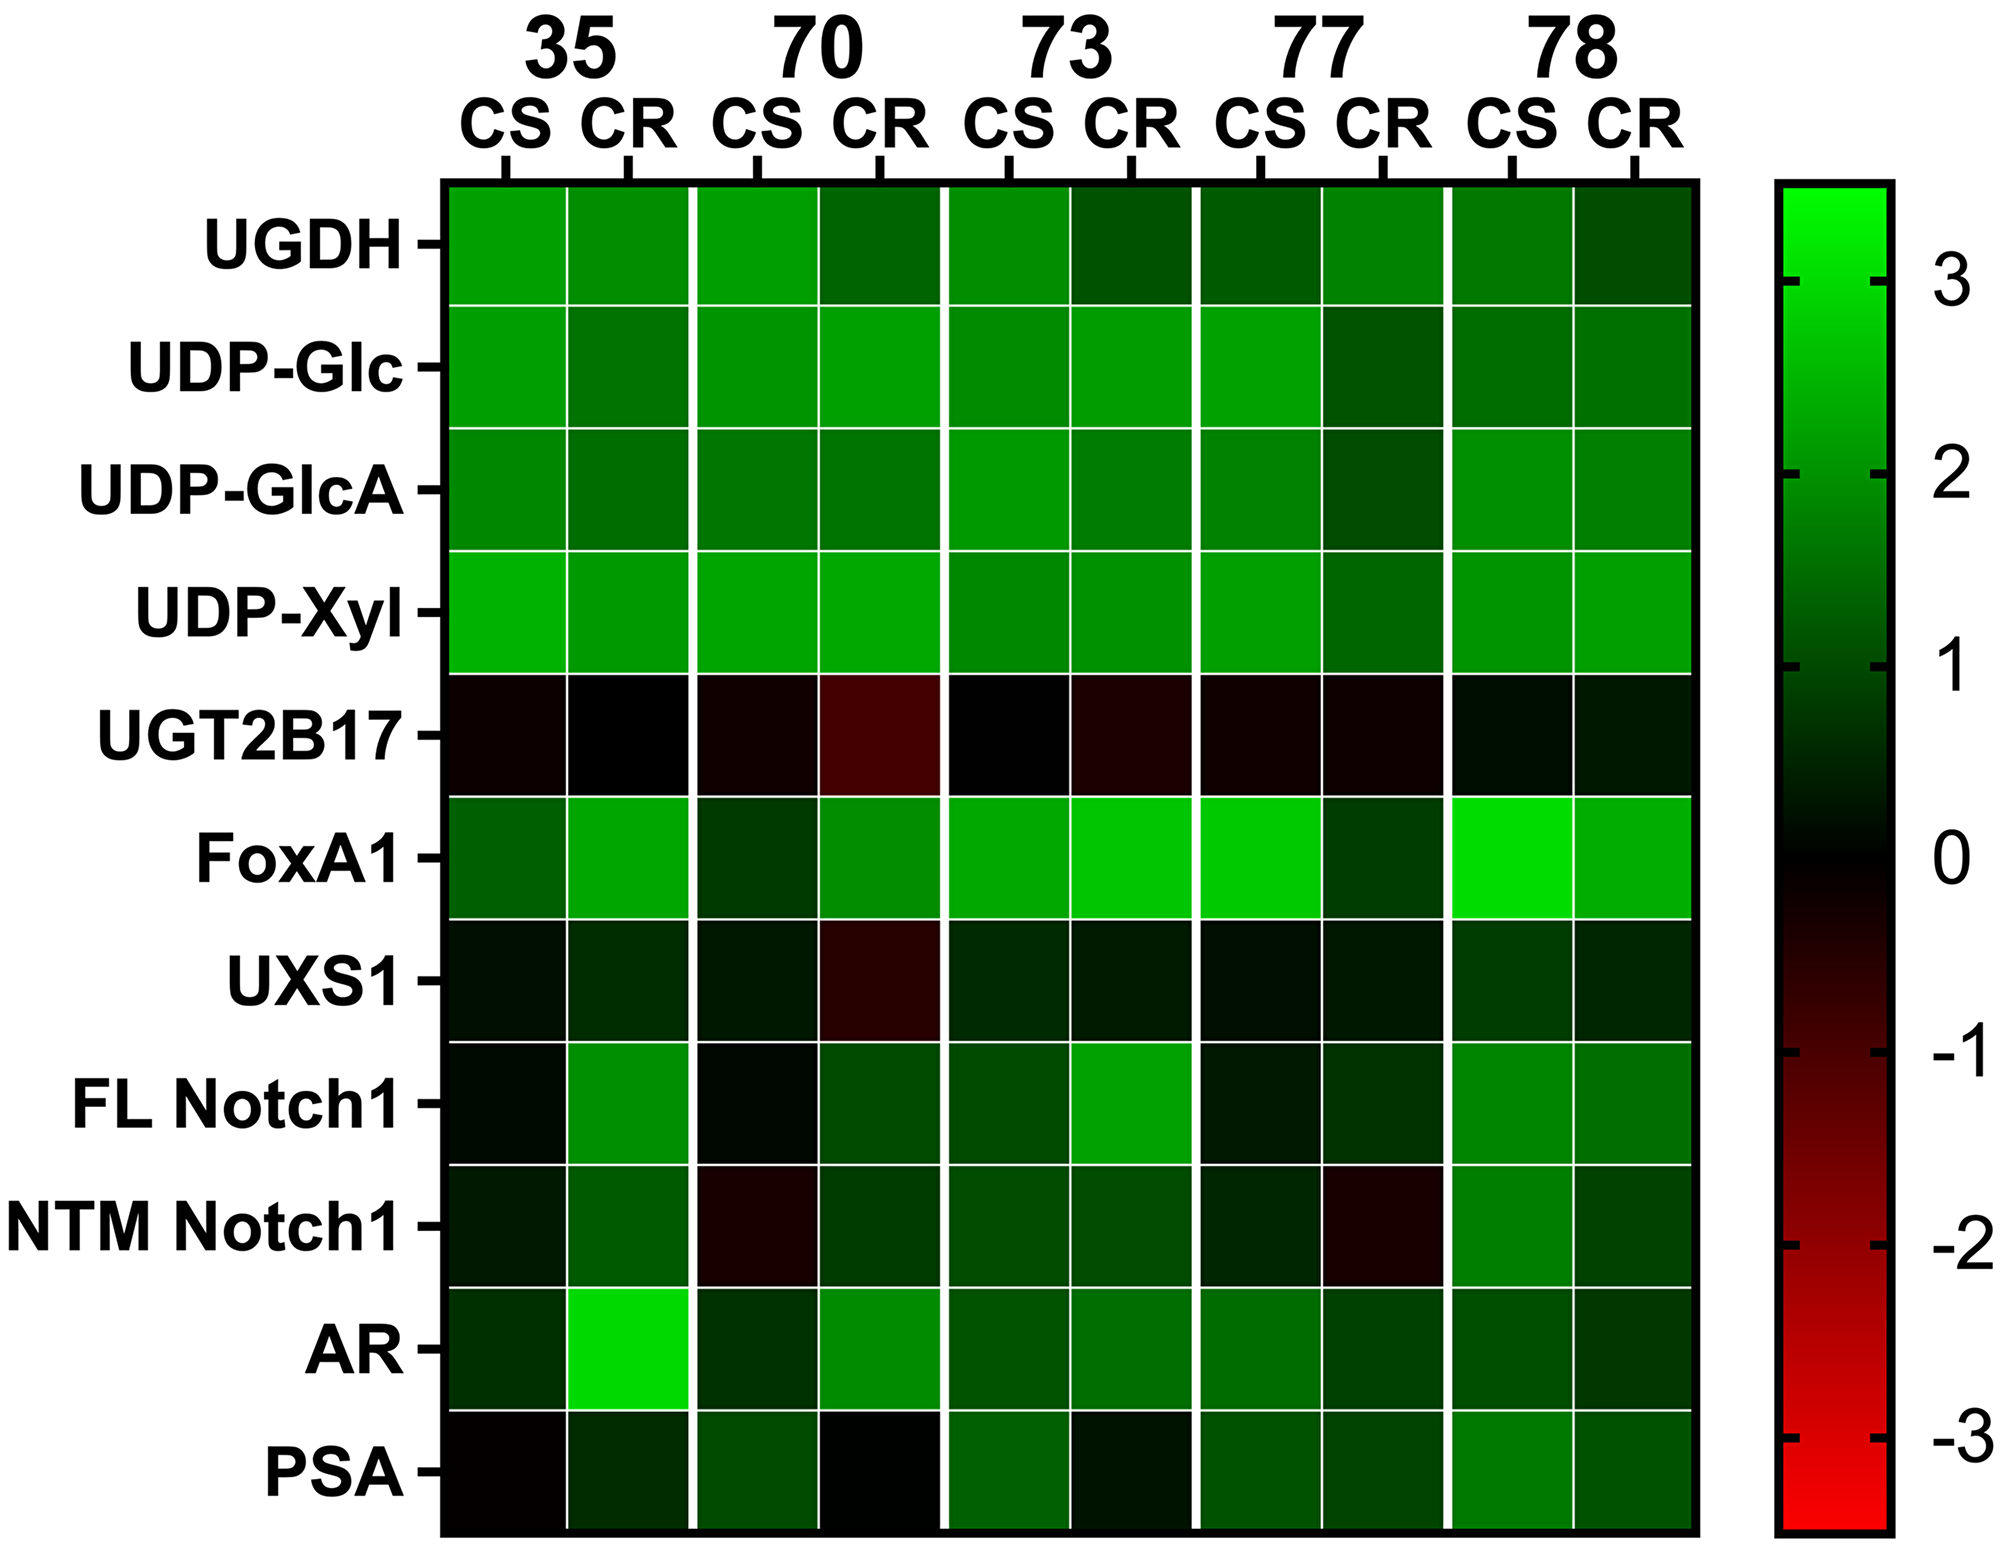 Comparative analysis of gene expression and metabolite levels in PDX tissue.